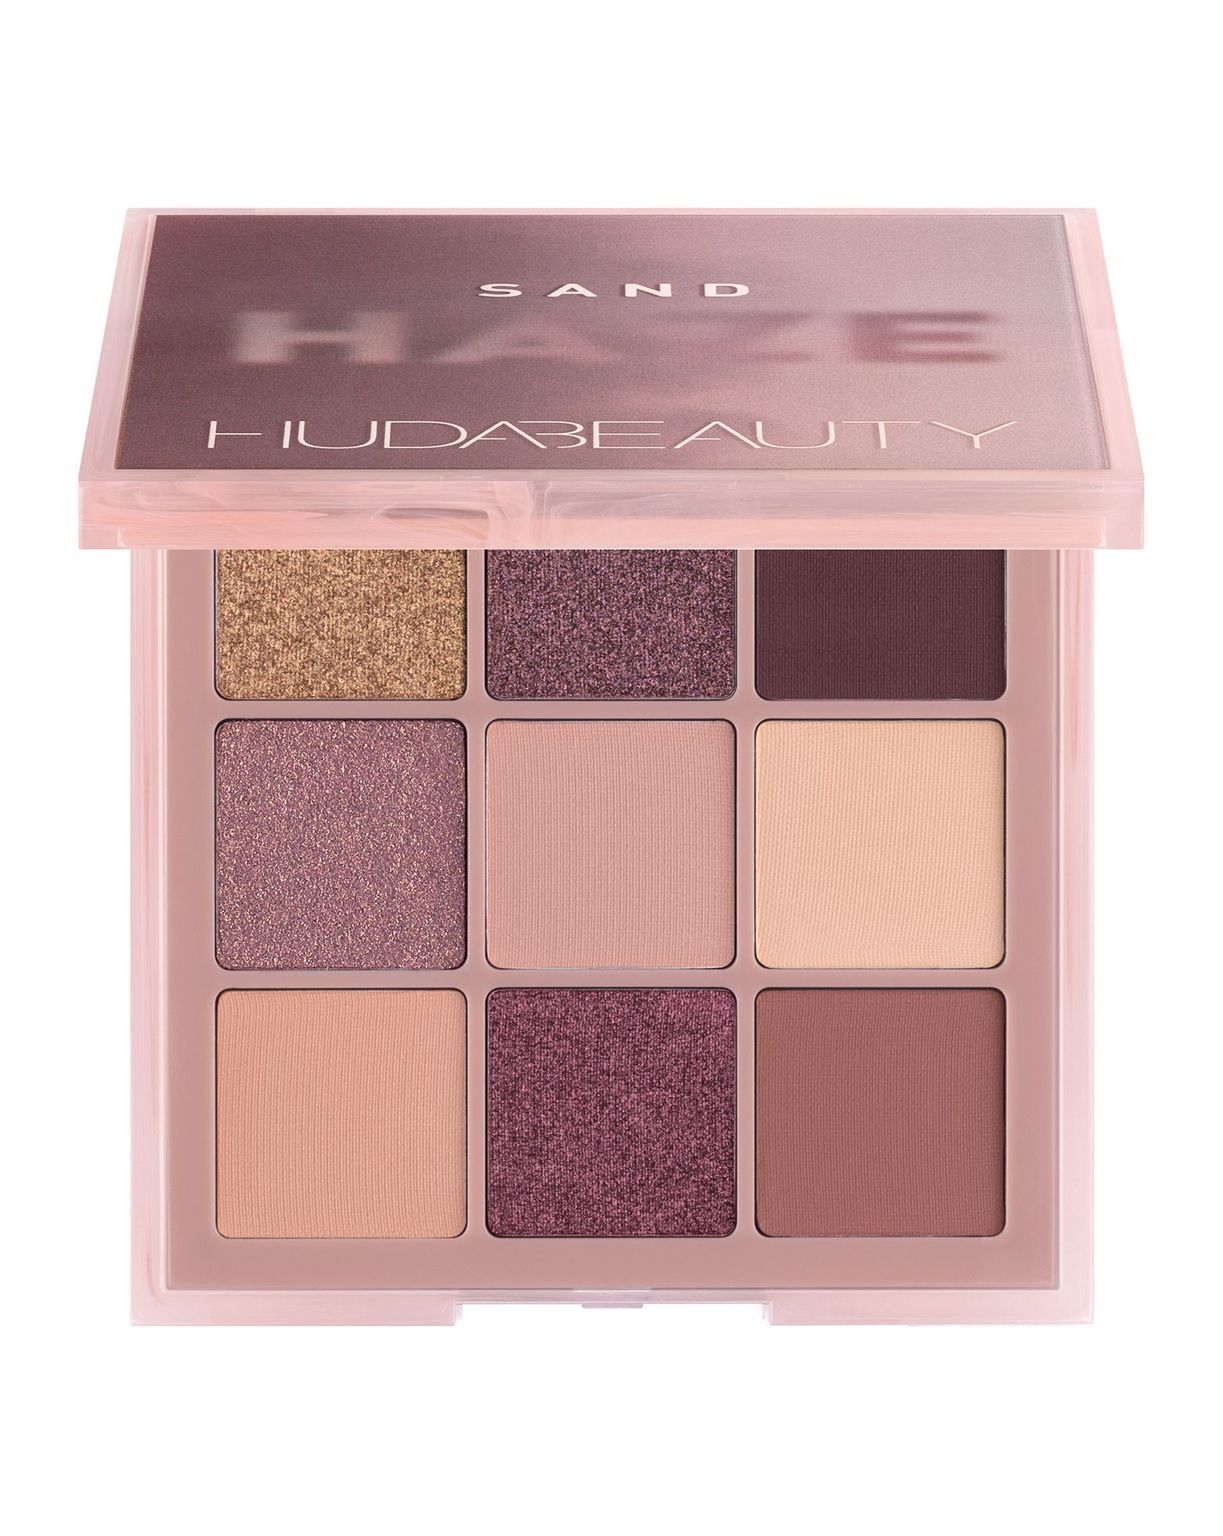 Sand Haze Obsessions  eyeshadow palette